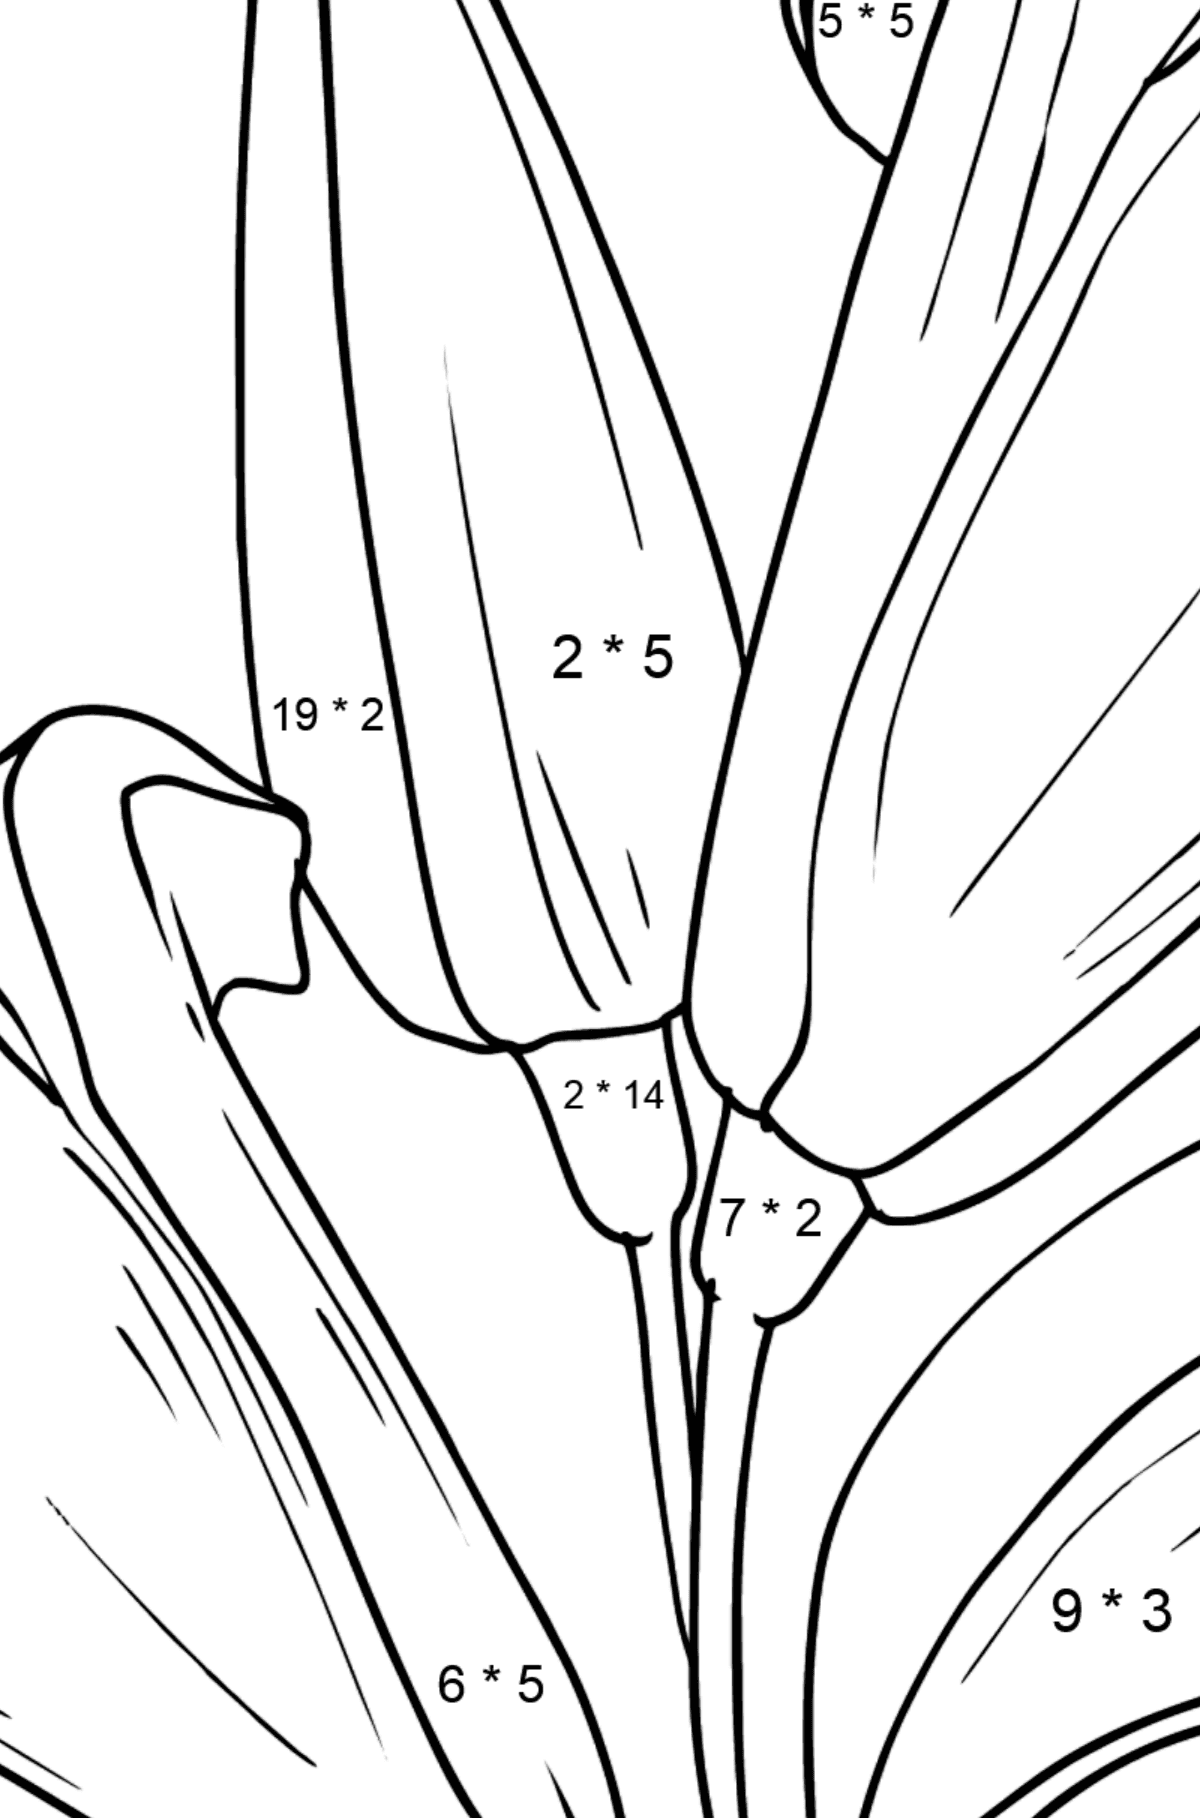 Flower Coloring Page - Lilies - Math Coloring - Multiplication for Kids